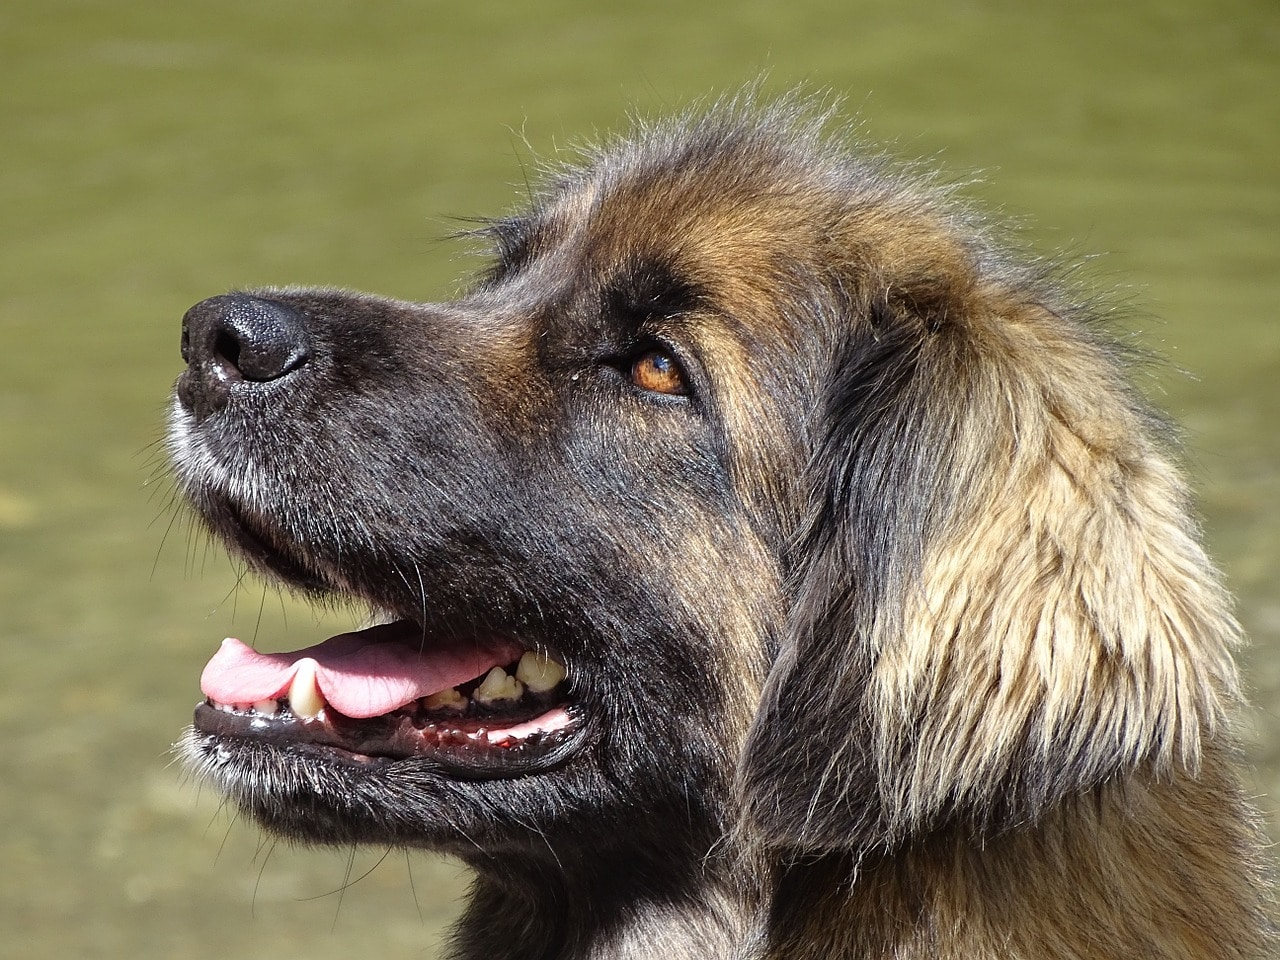 Leonberger puppies like this one are big and shaggy at an early age.